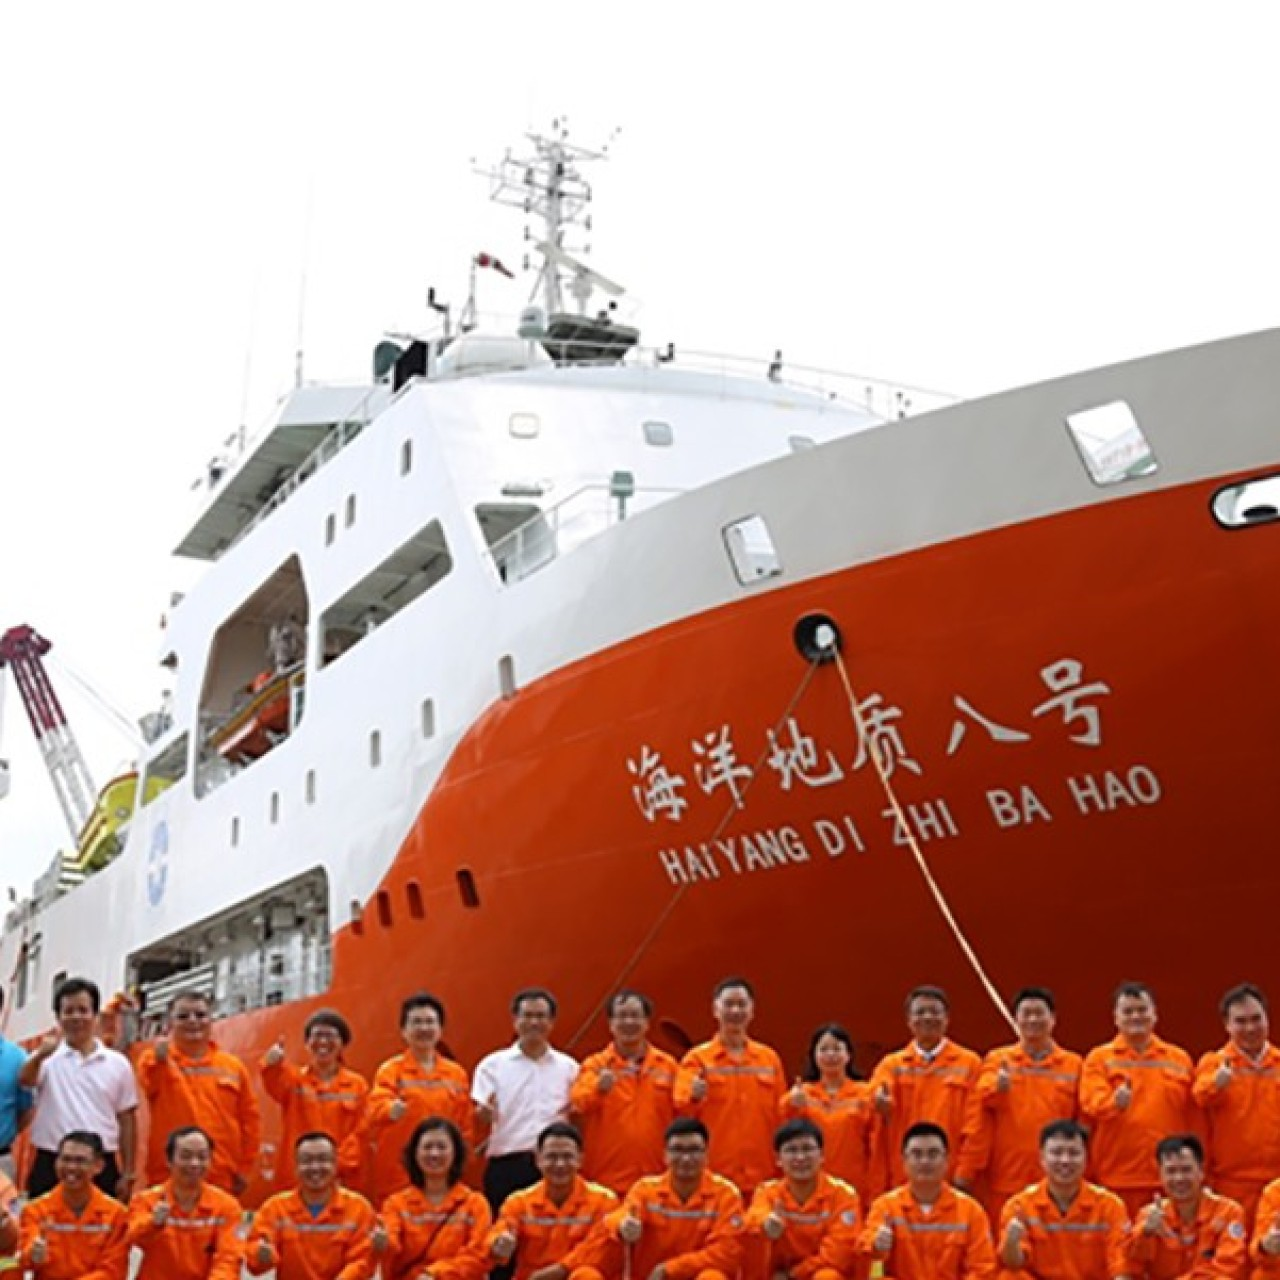 The Chinese survey ships that cause ripples in Vietnam and across